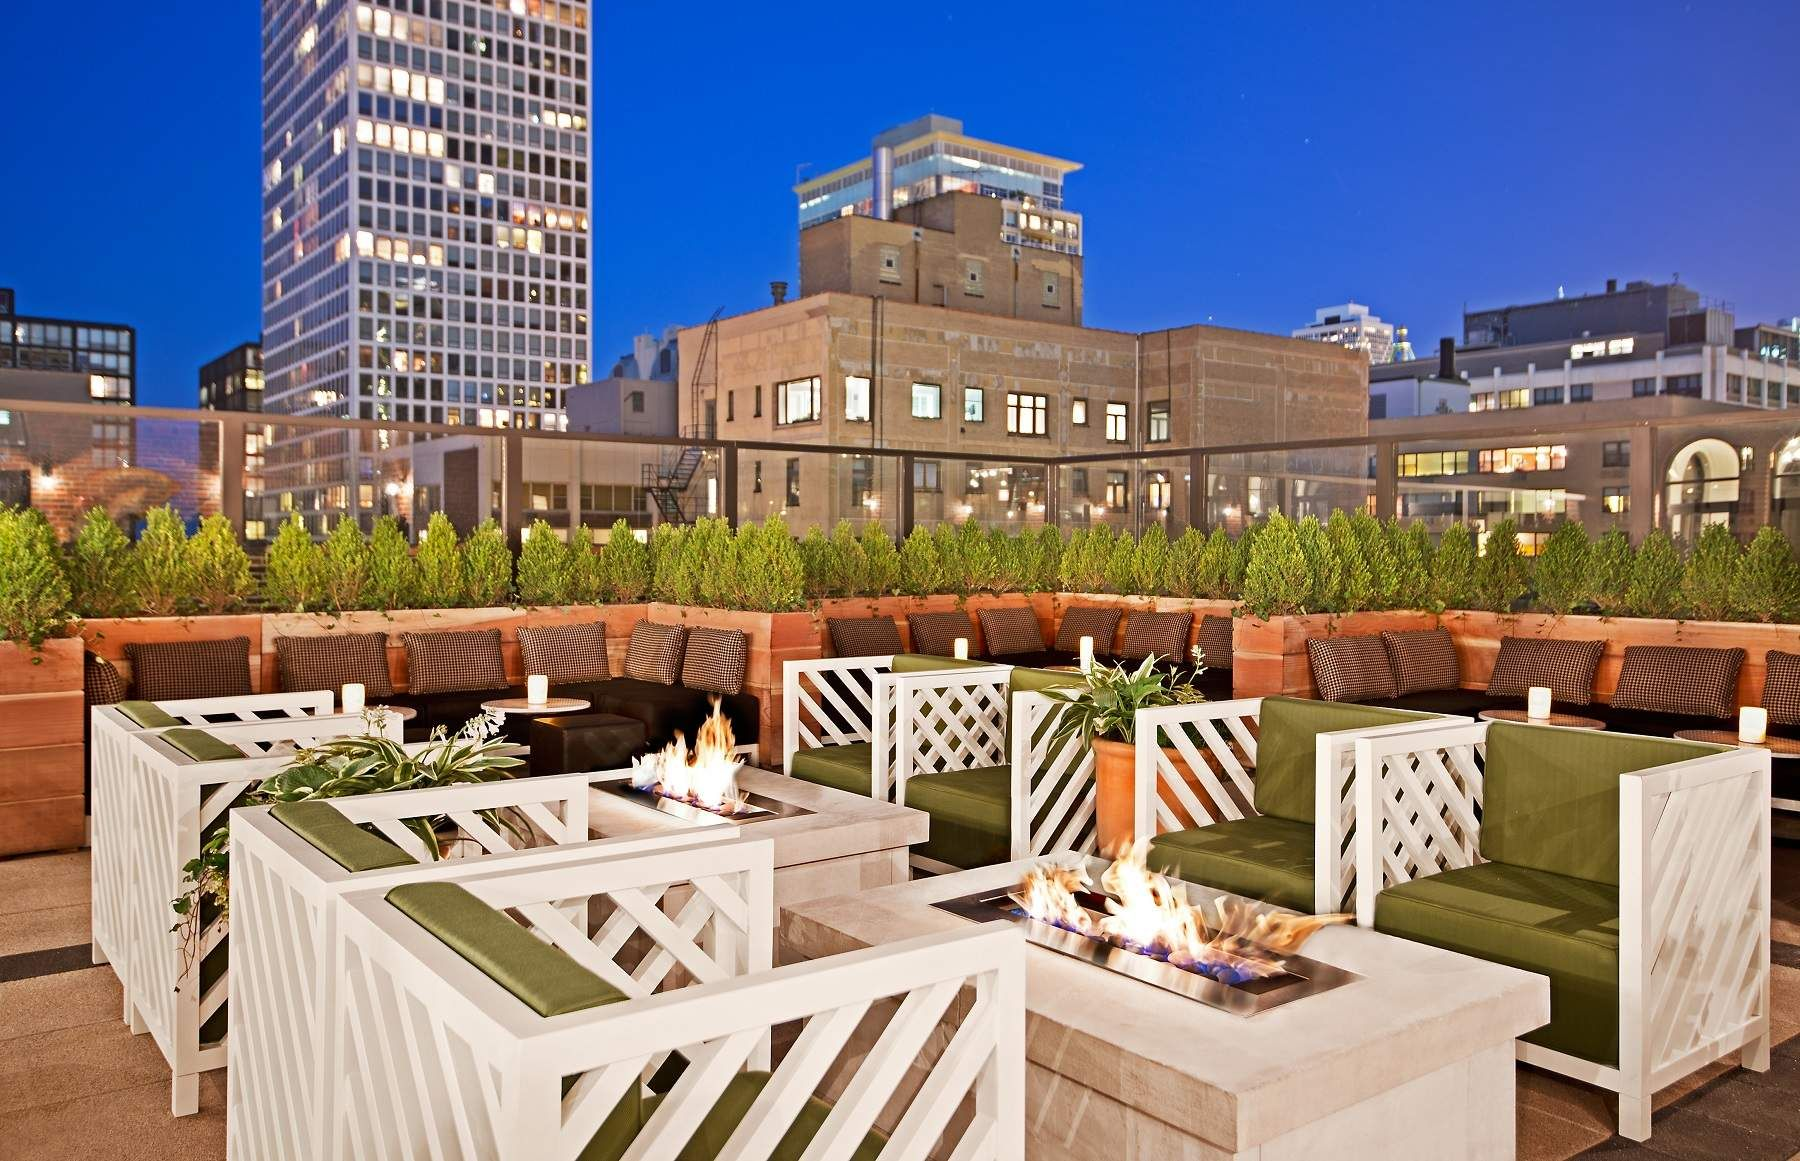 From Beer Gardens, To Patios, To Rooftops, To Rooftop Beer Garden Patios.  Chicago HotelsChicago RestaurantsRooftop Bars ...